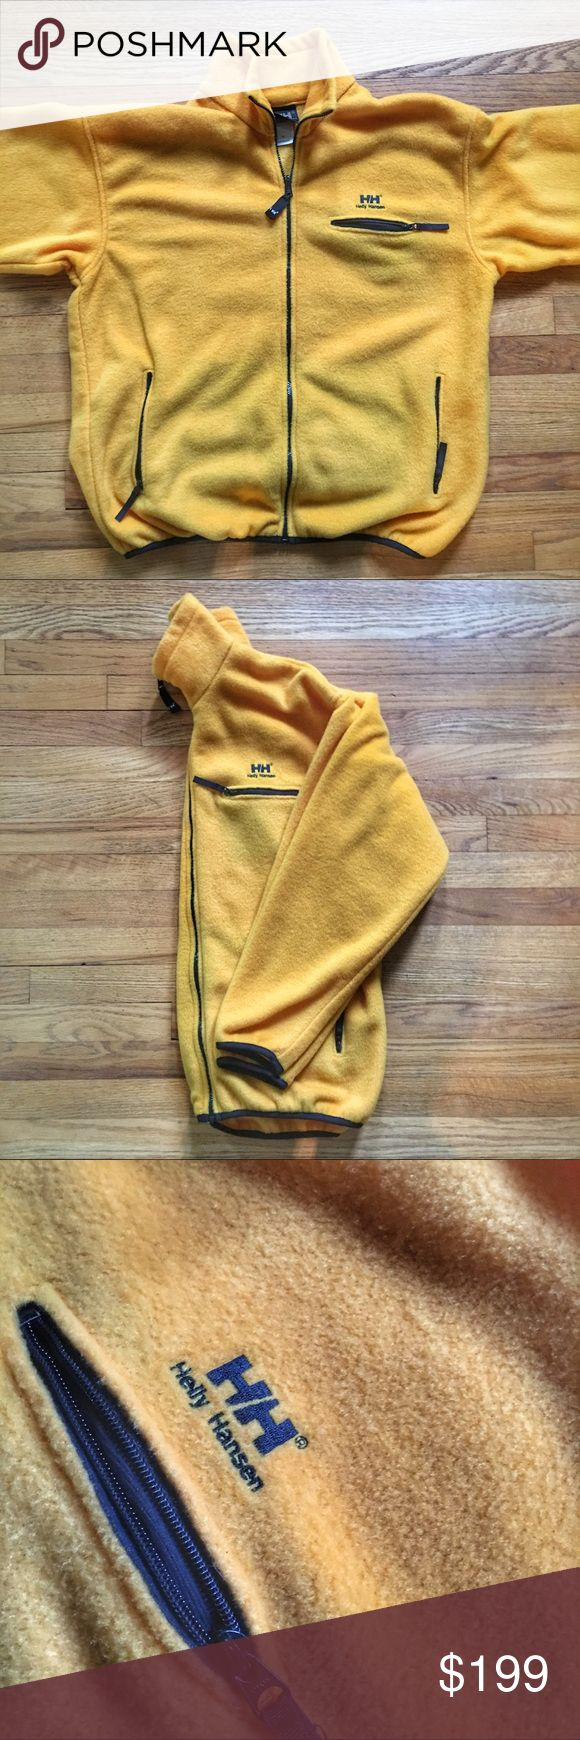 **SOLD** Vintage Helly Hansen Fleece Zip-up Jacket Vintage Helly Hansen Fleece Zip-up Jacket - large.  Pre-owned in excellent condition. Get it cheaper on G®ailed or Ⓜ️erc. Helly Hansen Jackets & Coats